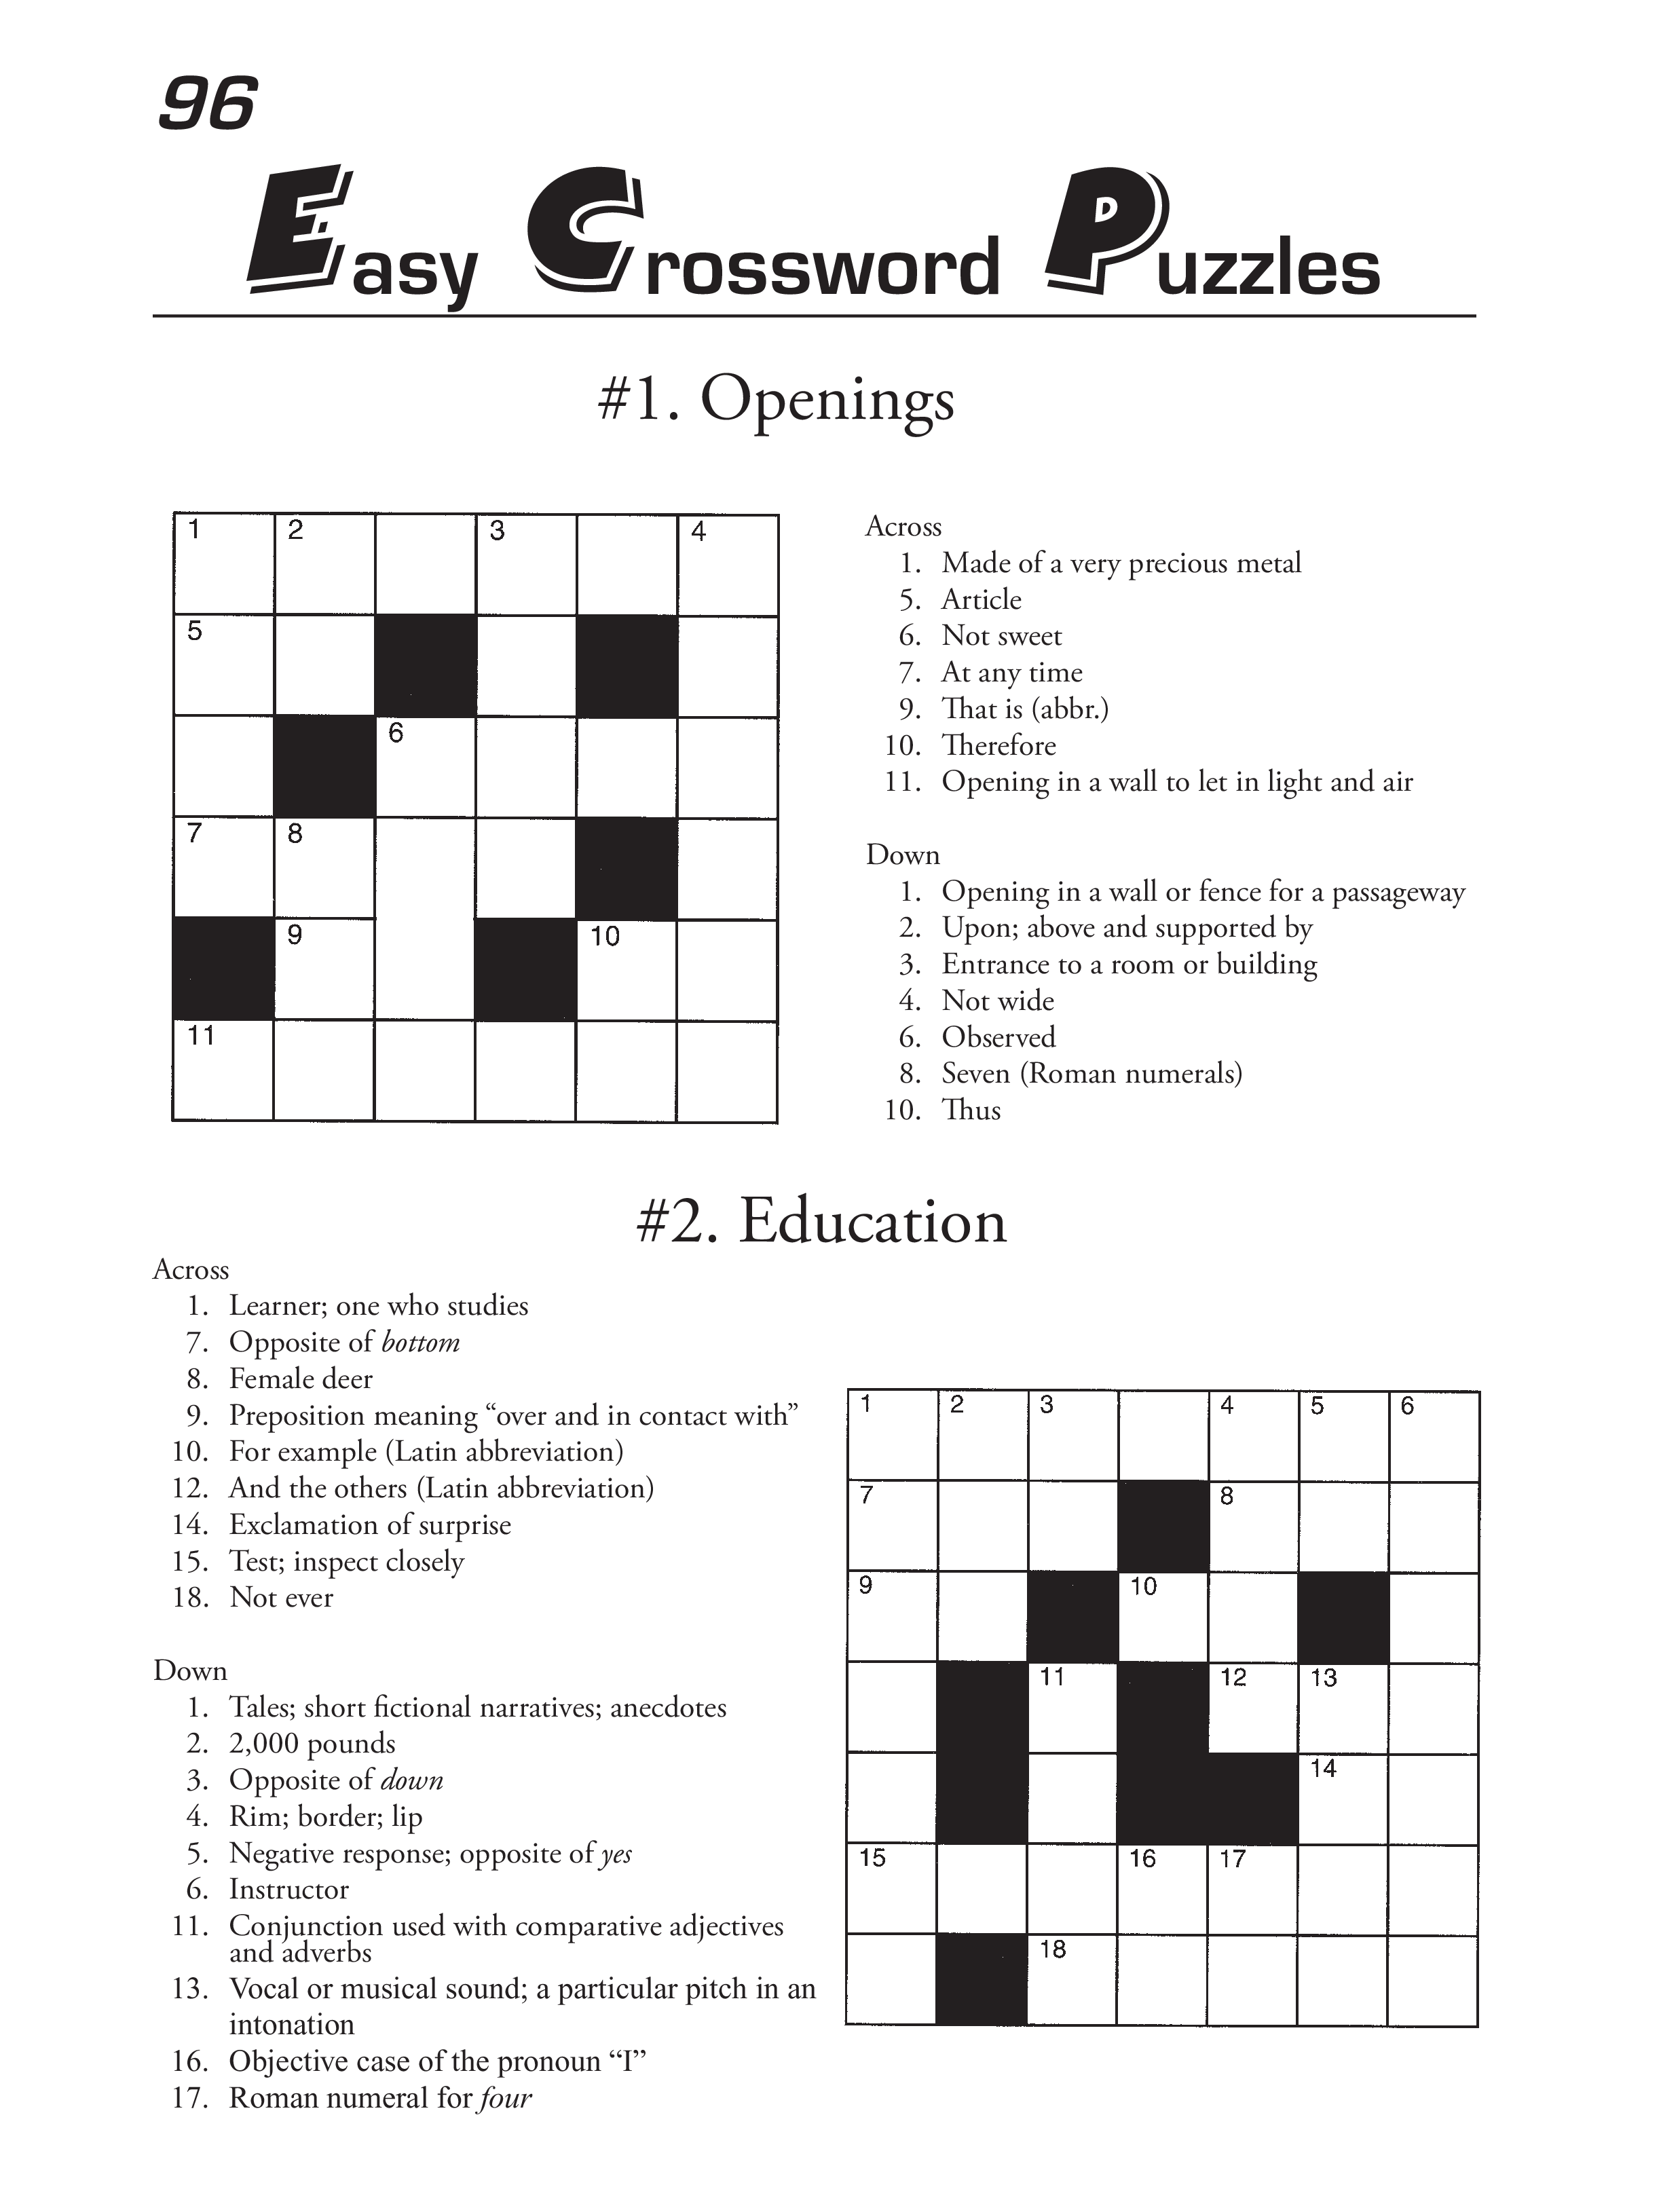 photograph about Celebrity Crossword Printable referred to as Printable Crossword Puzzles template Templates at